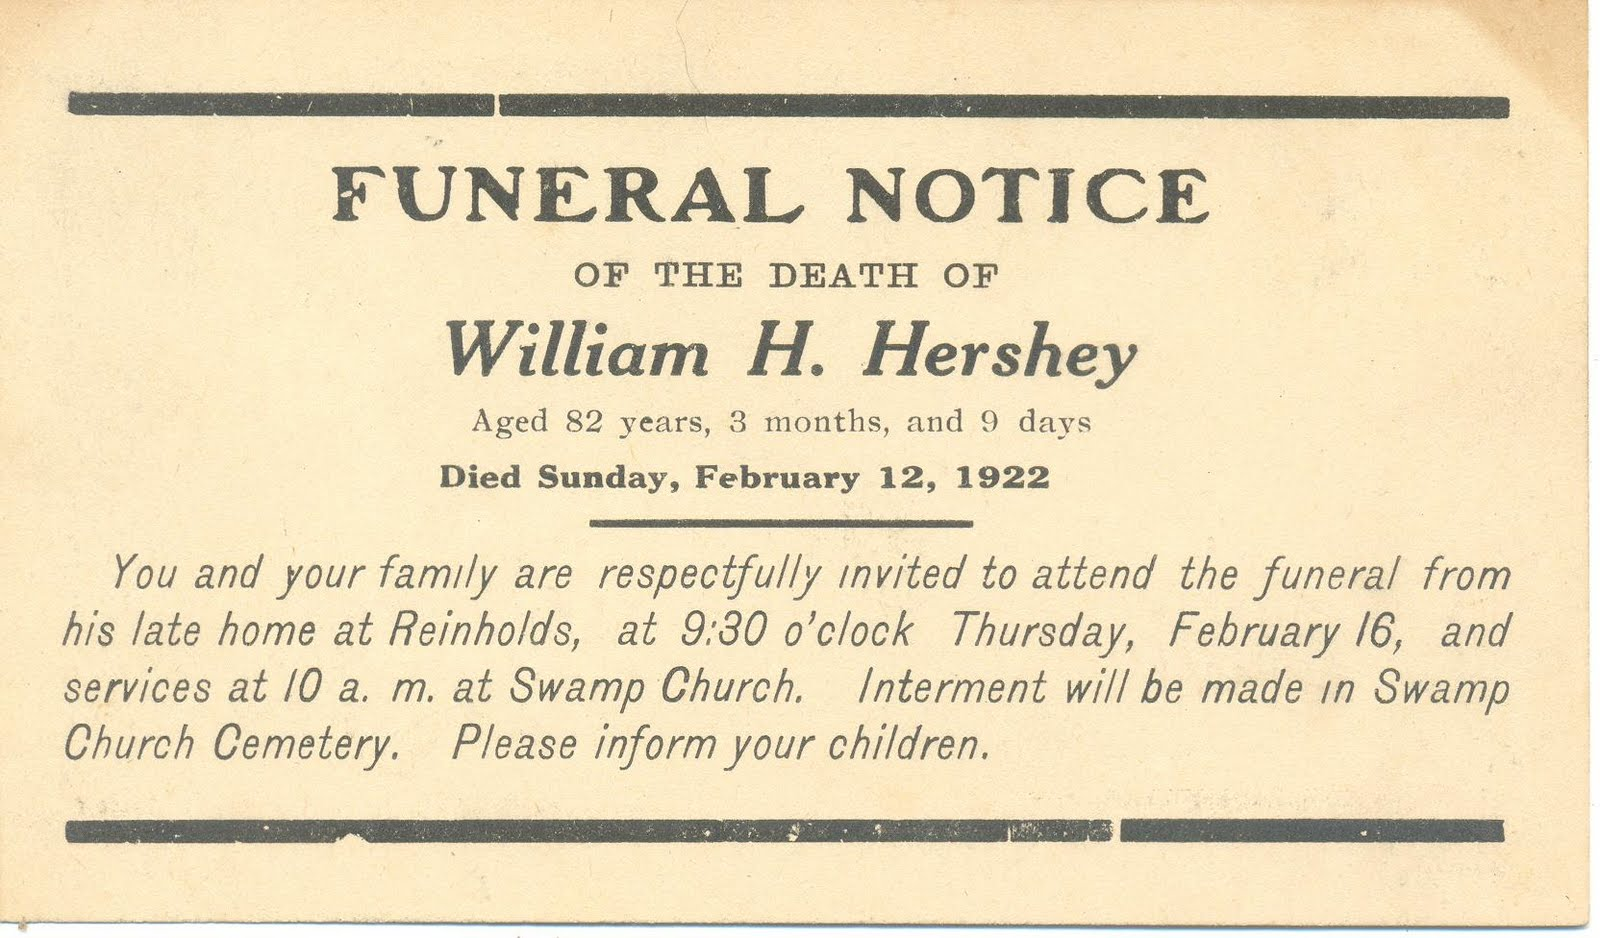 A Land Of Deepest Shade Death Memorabilia Part 4 Funeral Notices Hershey  Notice Death Memorabilia Part